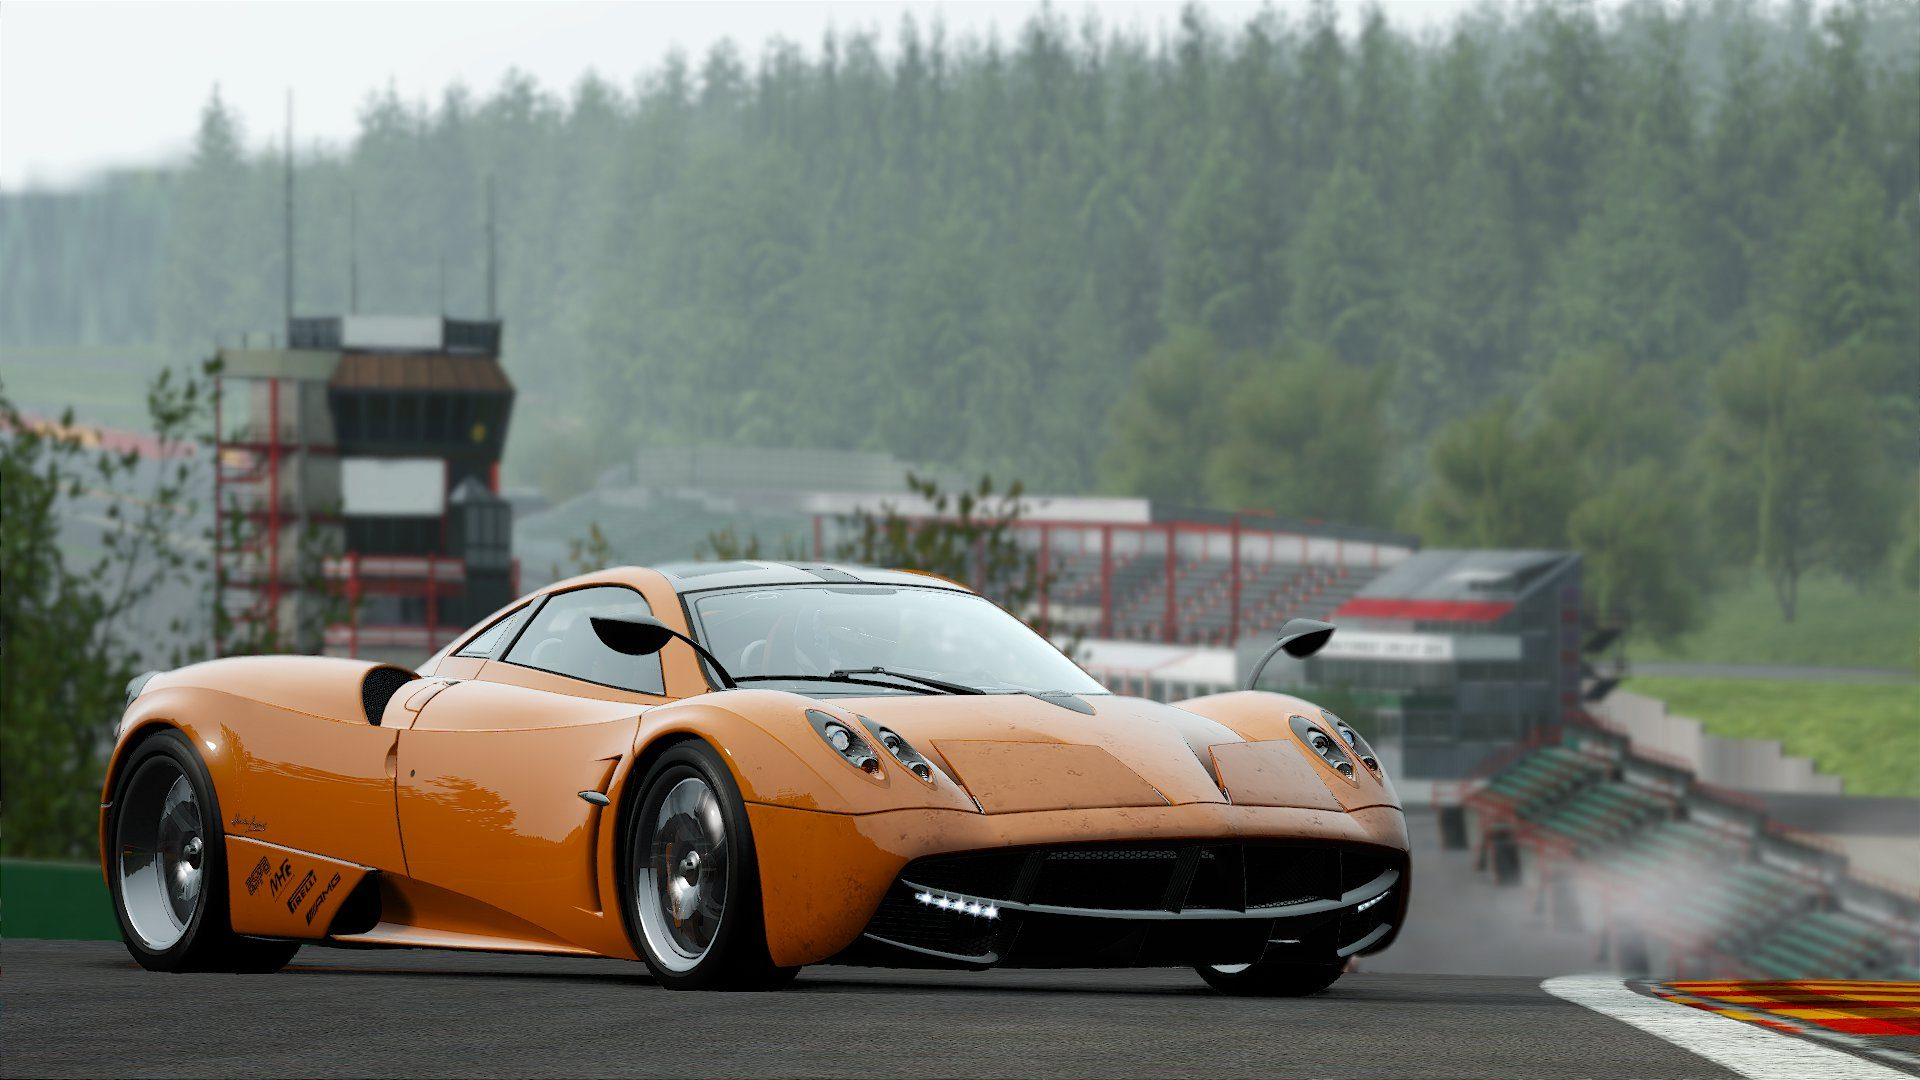 Project CARS image #7